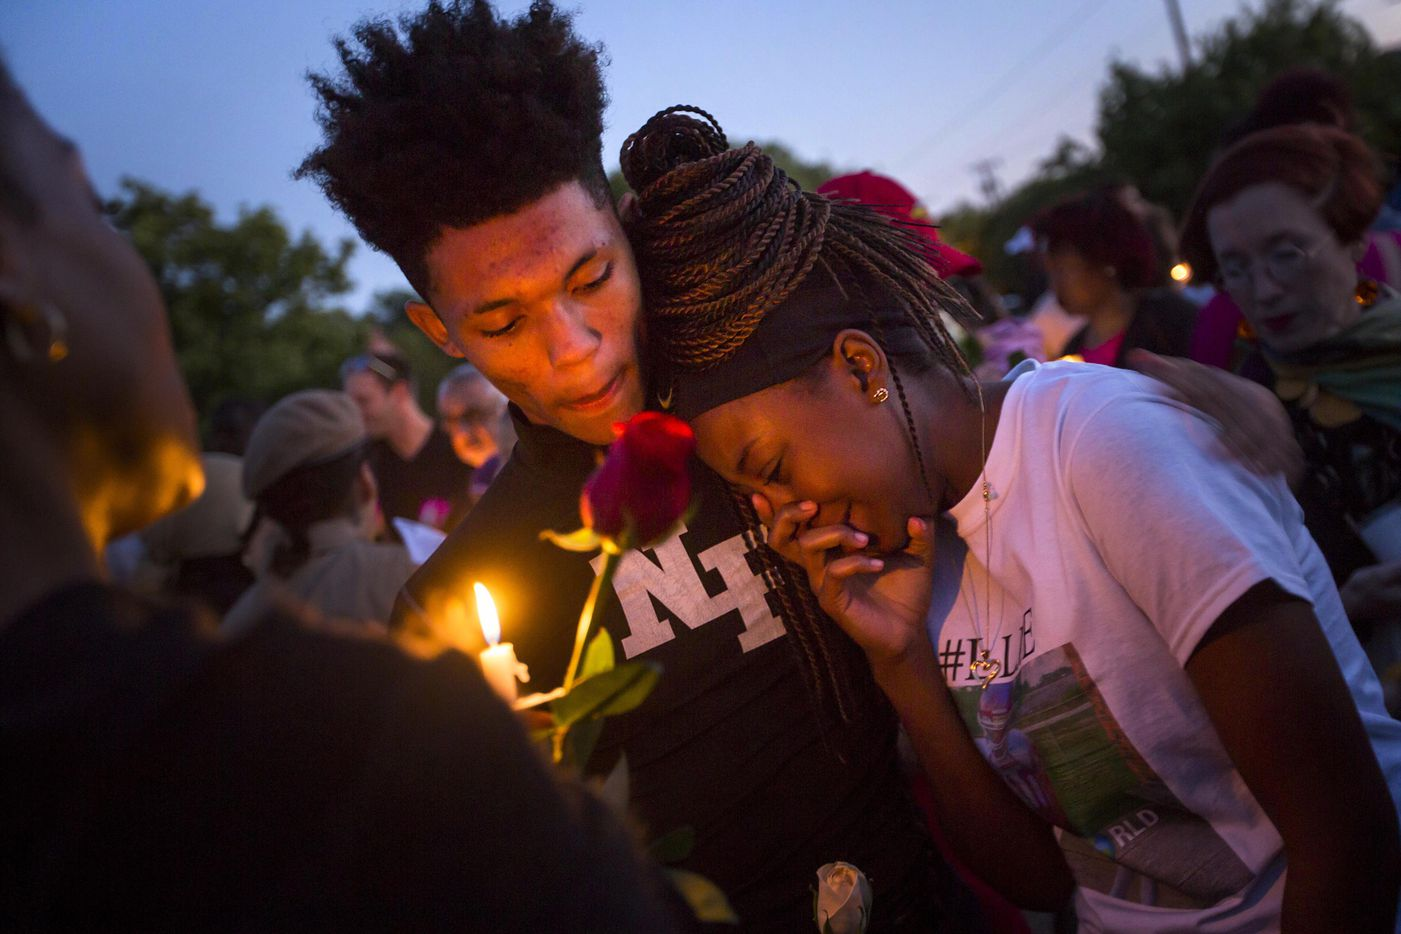 """Ashuntae Coleman, 14, is consoled by De'Juan Johnson, 15, during the """"Remember His Name: Vigil for Jordan Edwards"""" candlelight vigil at Virgil T. Irwin Park on Thursday, May 4, 2017, in Balch Springs, Texas."""